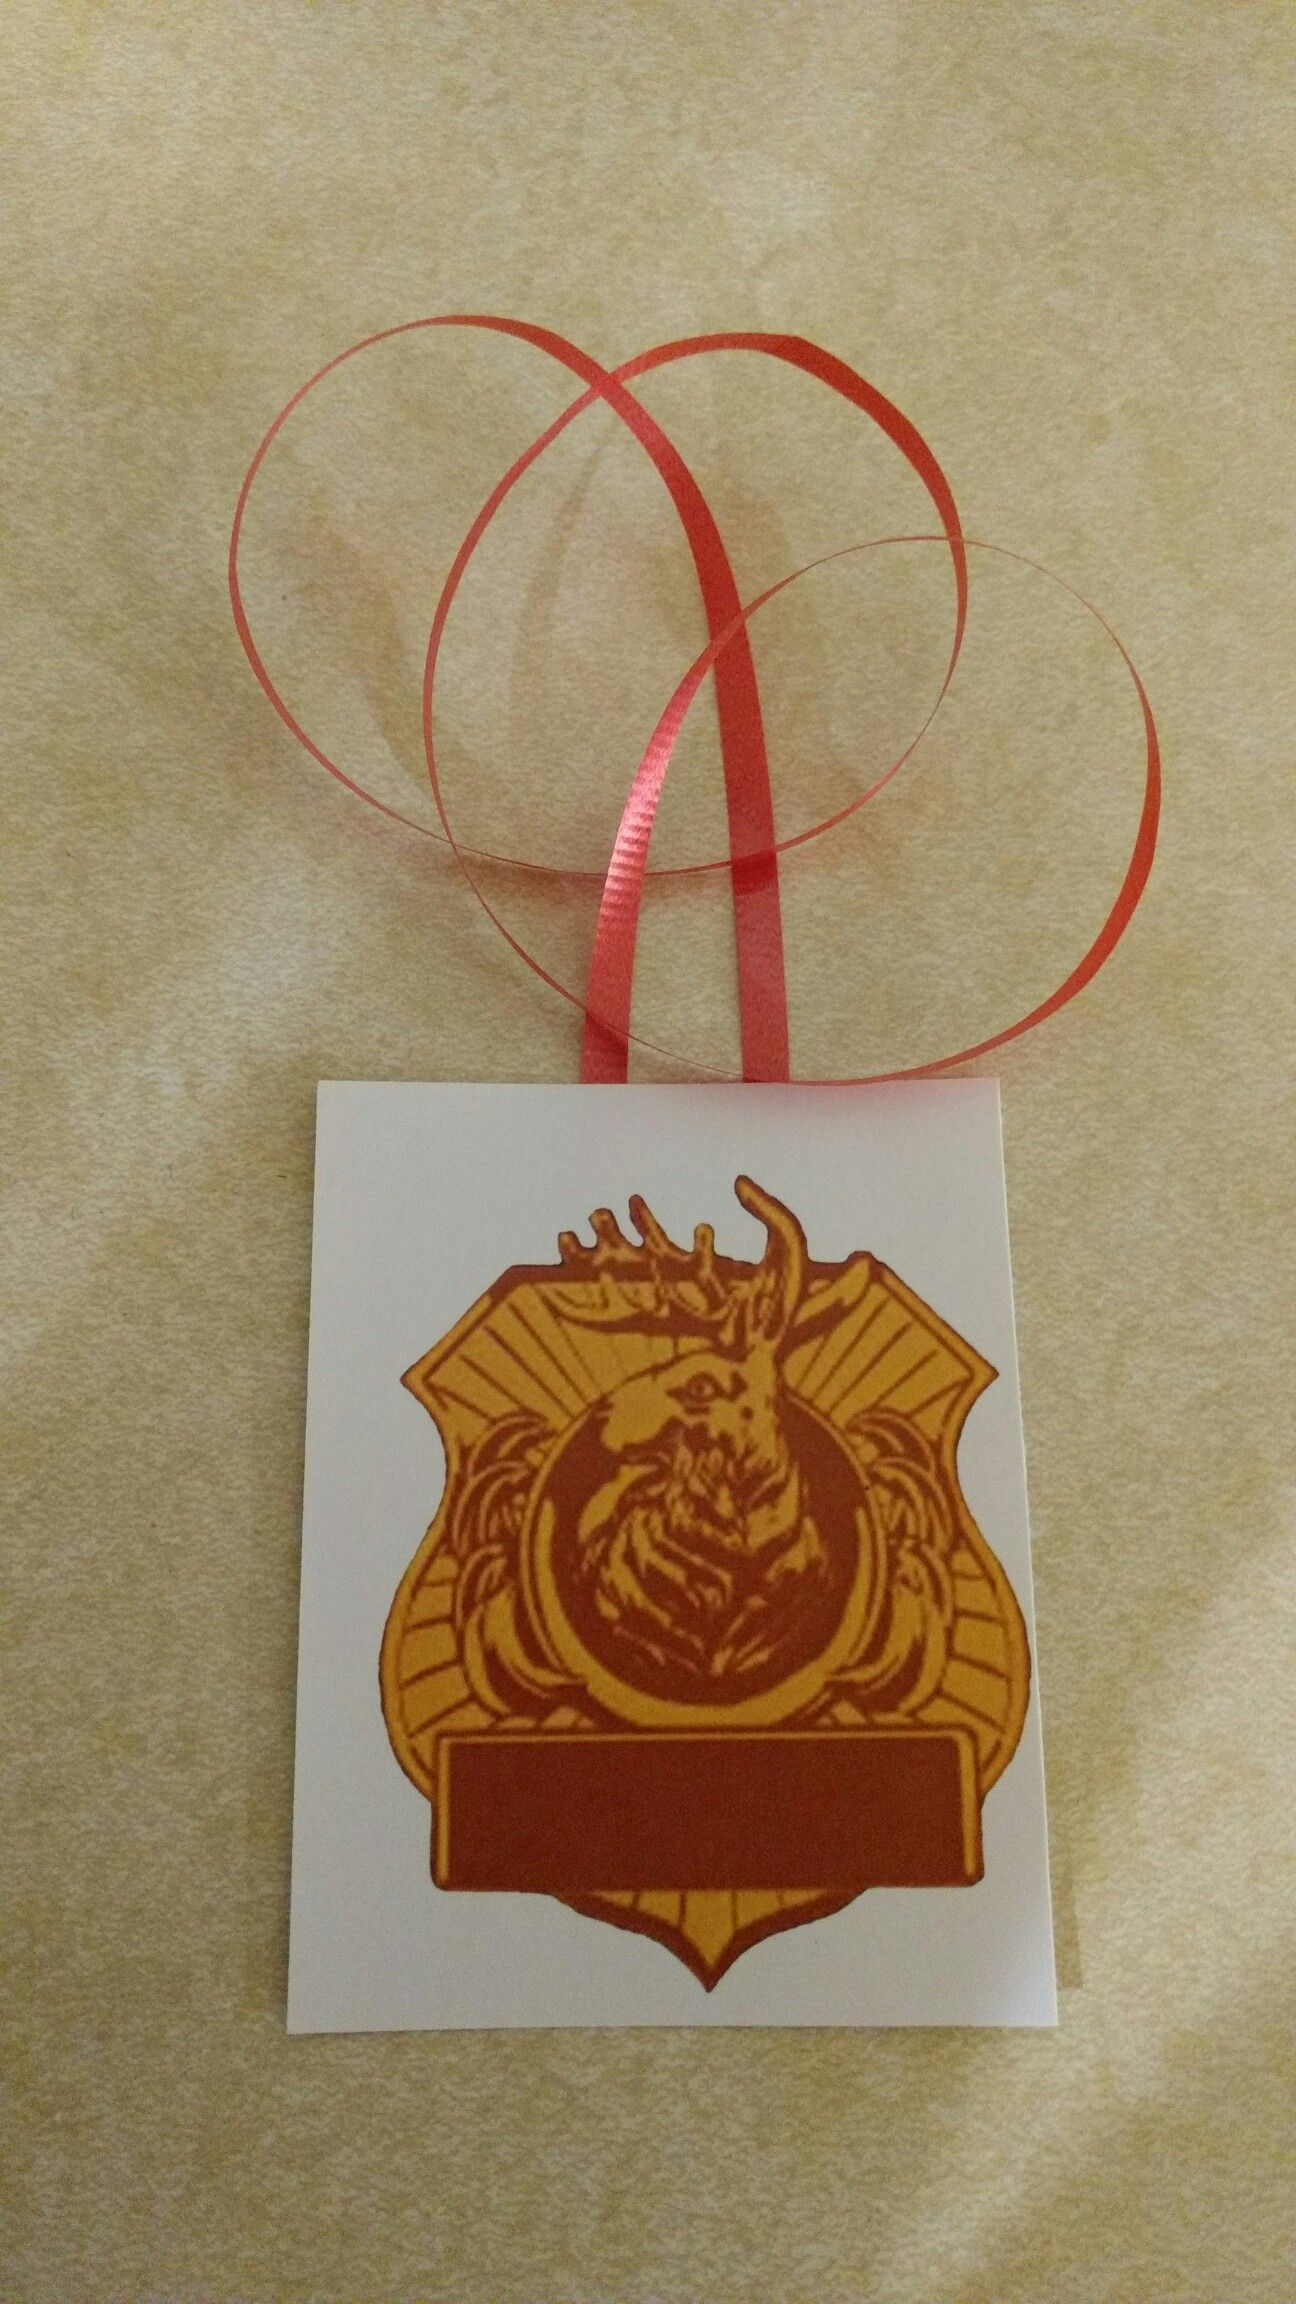 image regarding Odd Squad Badge Printable named Unusual squad bash PBS little ones badges few with identify your badges